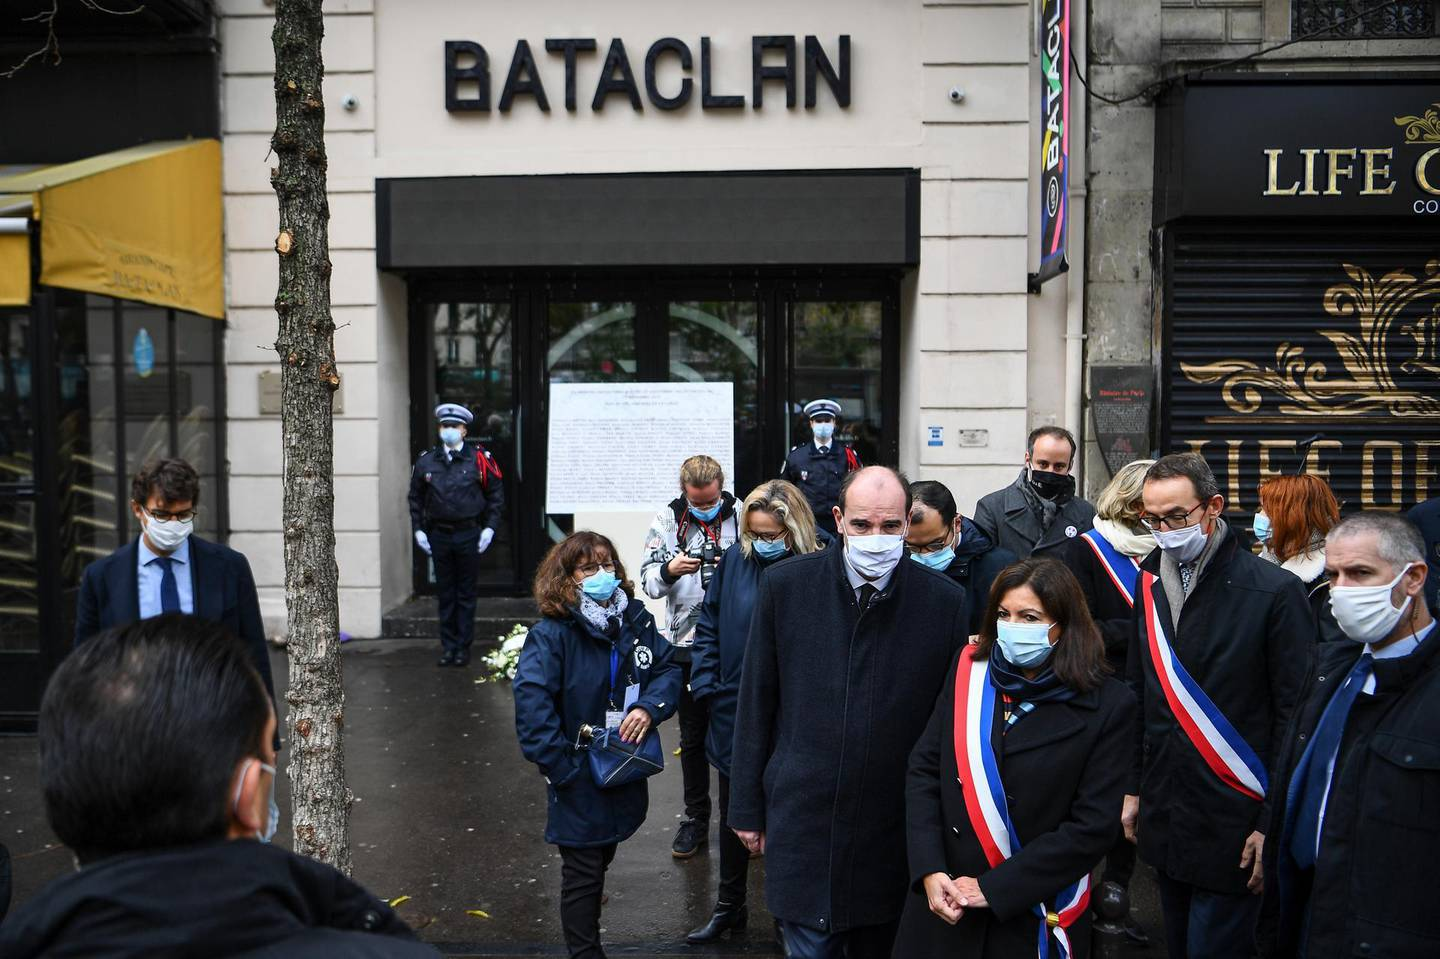 French Prime Minister Jean Castex, center, and Paris Mayor Anne Hidalgo, 3rd right, participate in a wreath laying ceremony, marking the 5th anniversary of the Nov. 13, 2015 attacks outside the Bataclan concert hall in Paris, Friday, Nov. 13, 2020. In silence and mourning, France is marking five years since 130 people were killed by Islamic State extremists who targeted the Bataclan concert hall, Paris cafes and the national stadium. (Christophe Archambault/Pool Photo via AP)